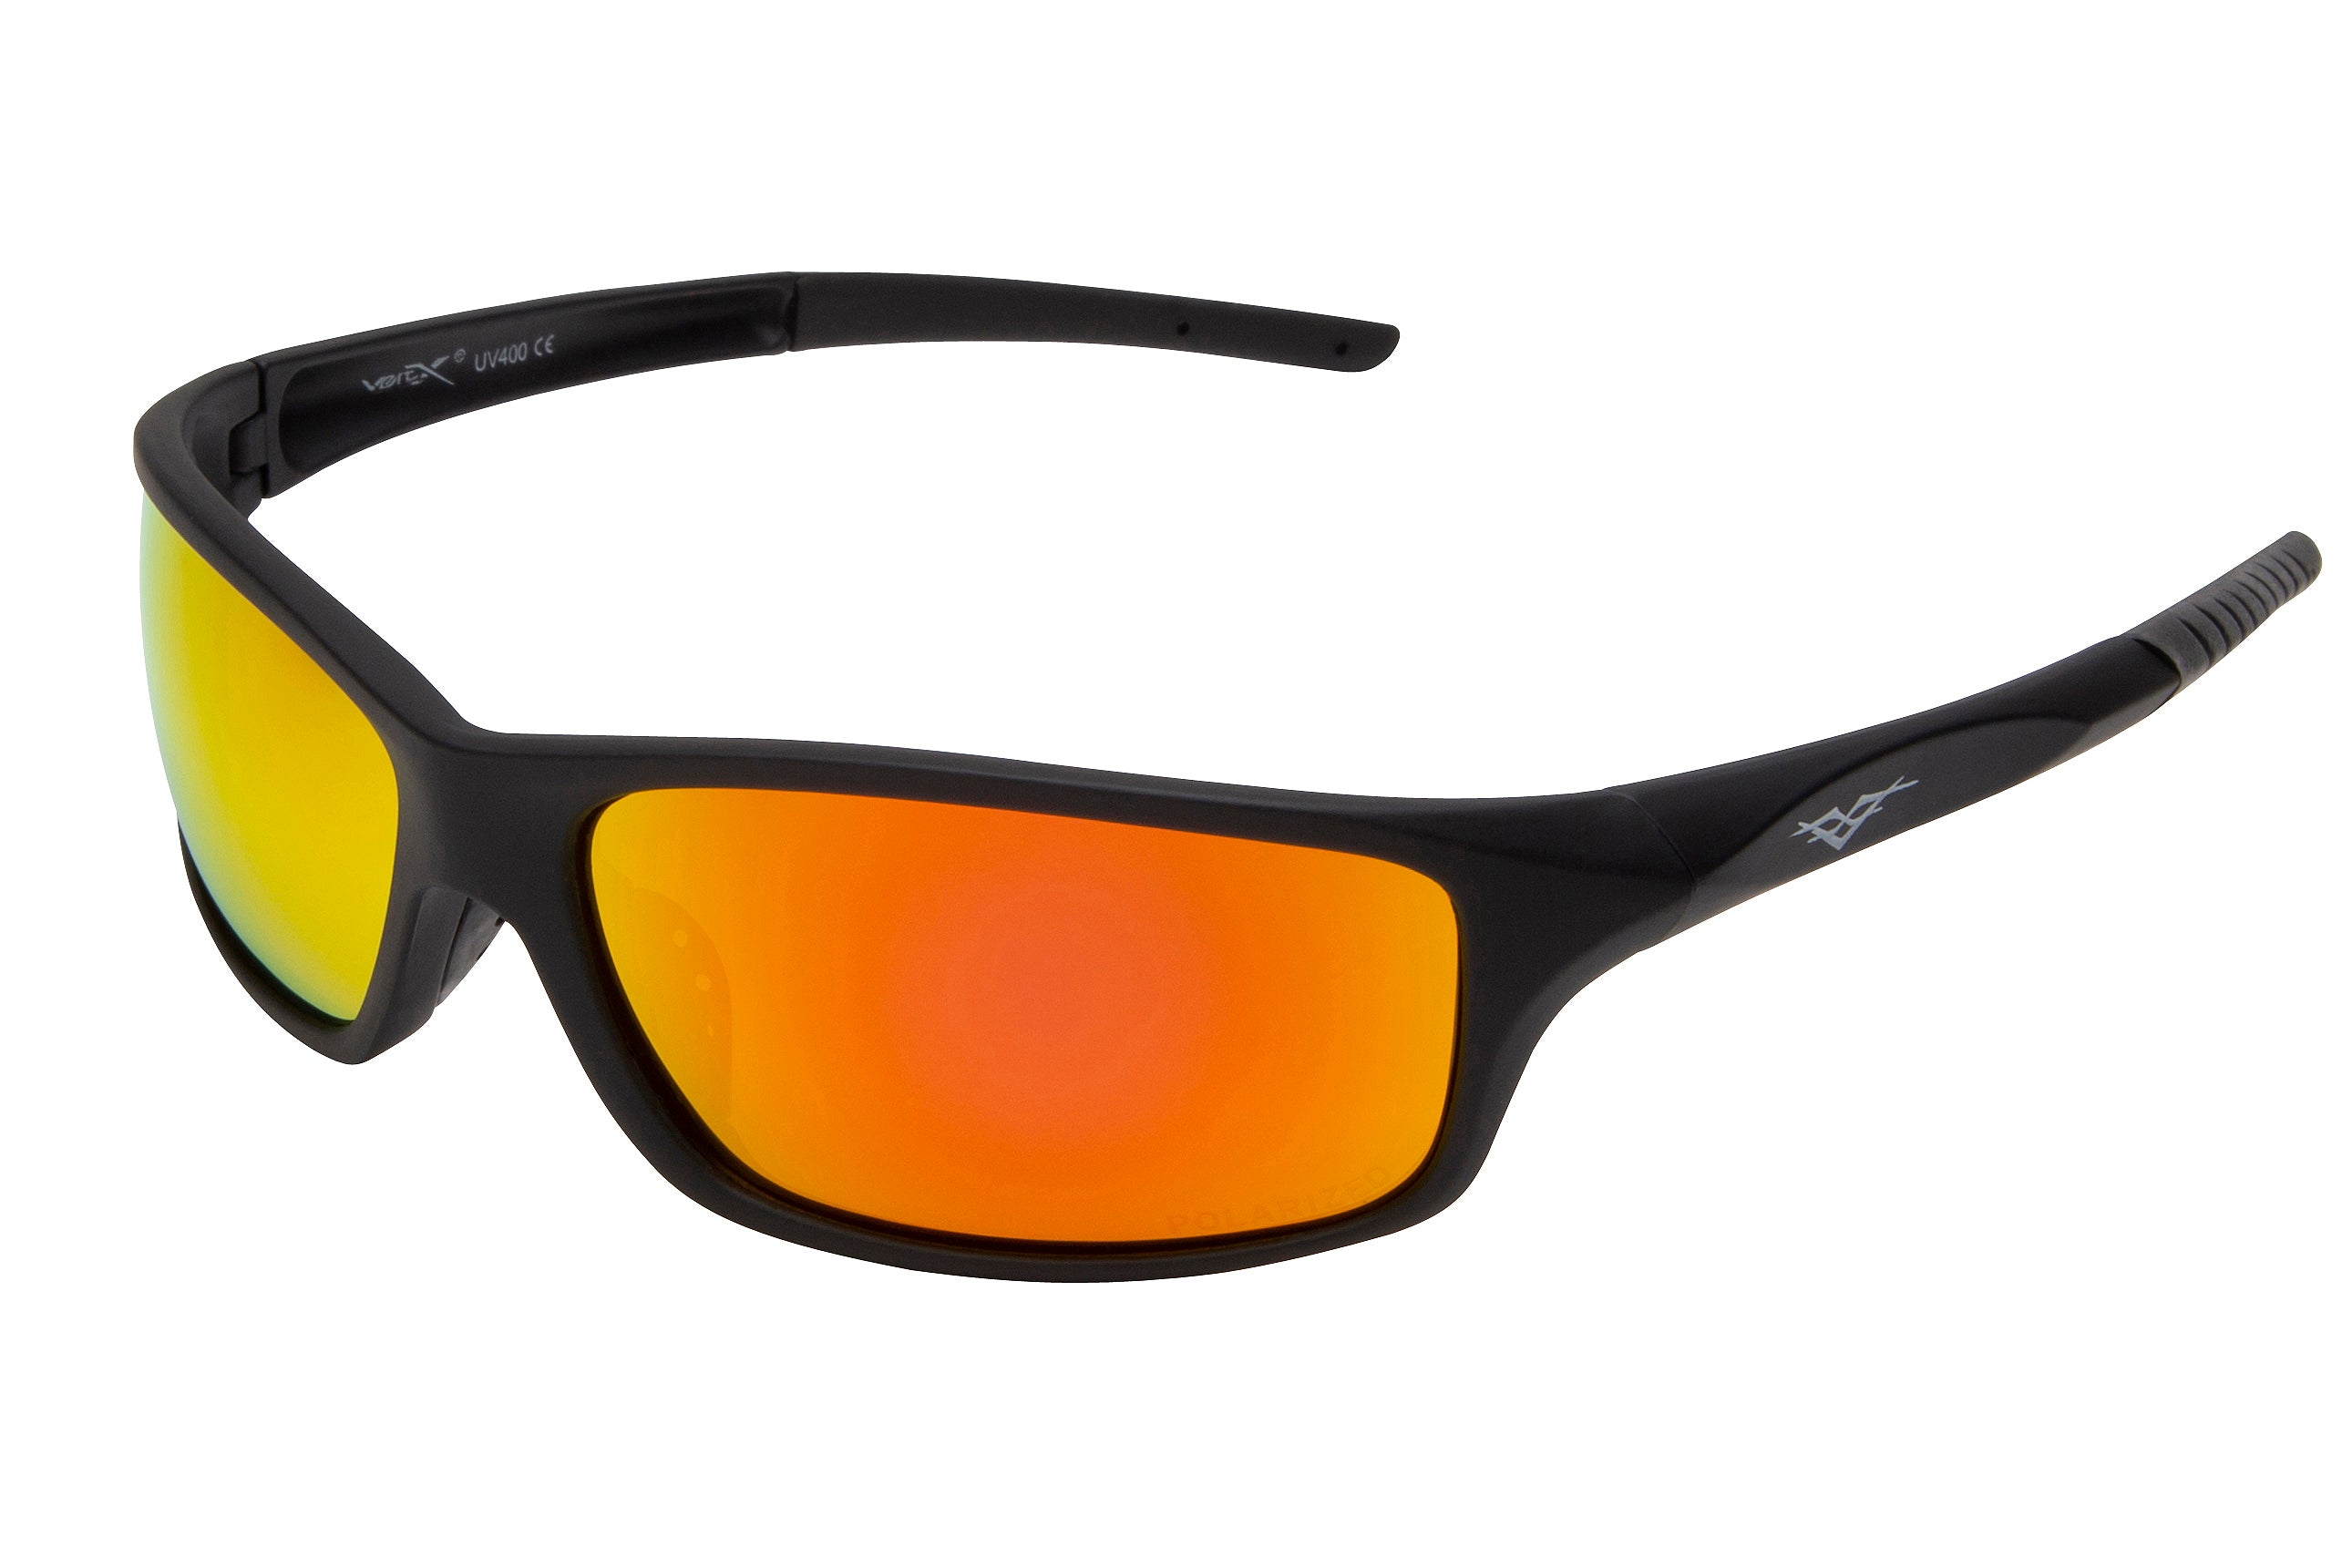 5001 PVX - PolarVX Polarized Sport Sunglasses